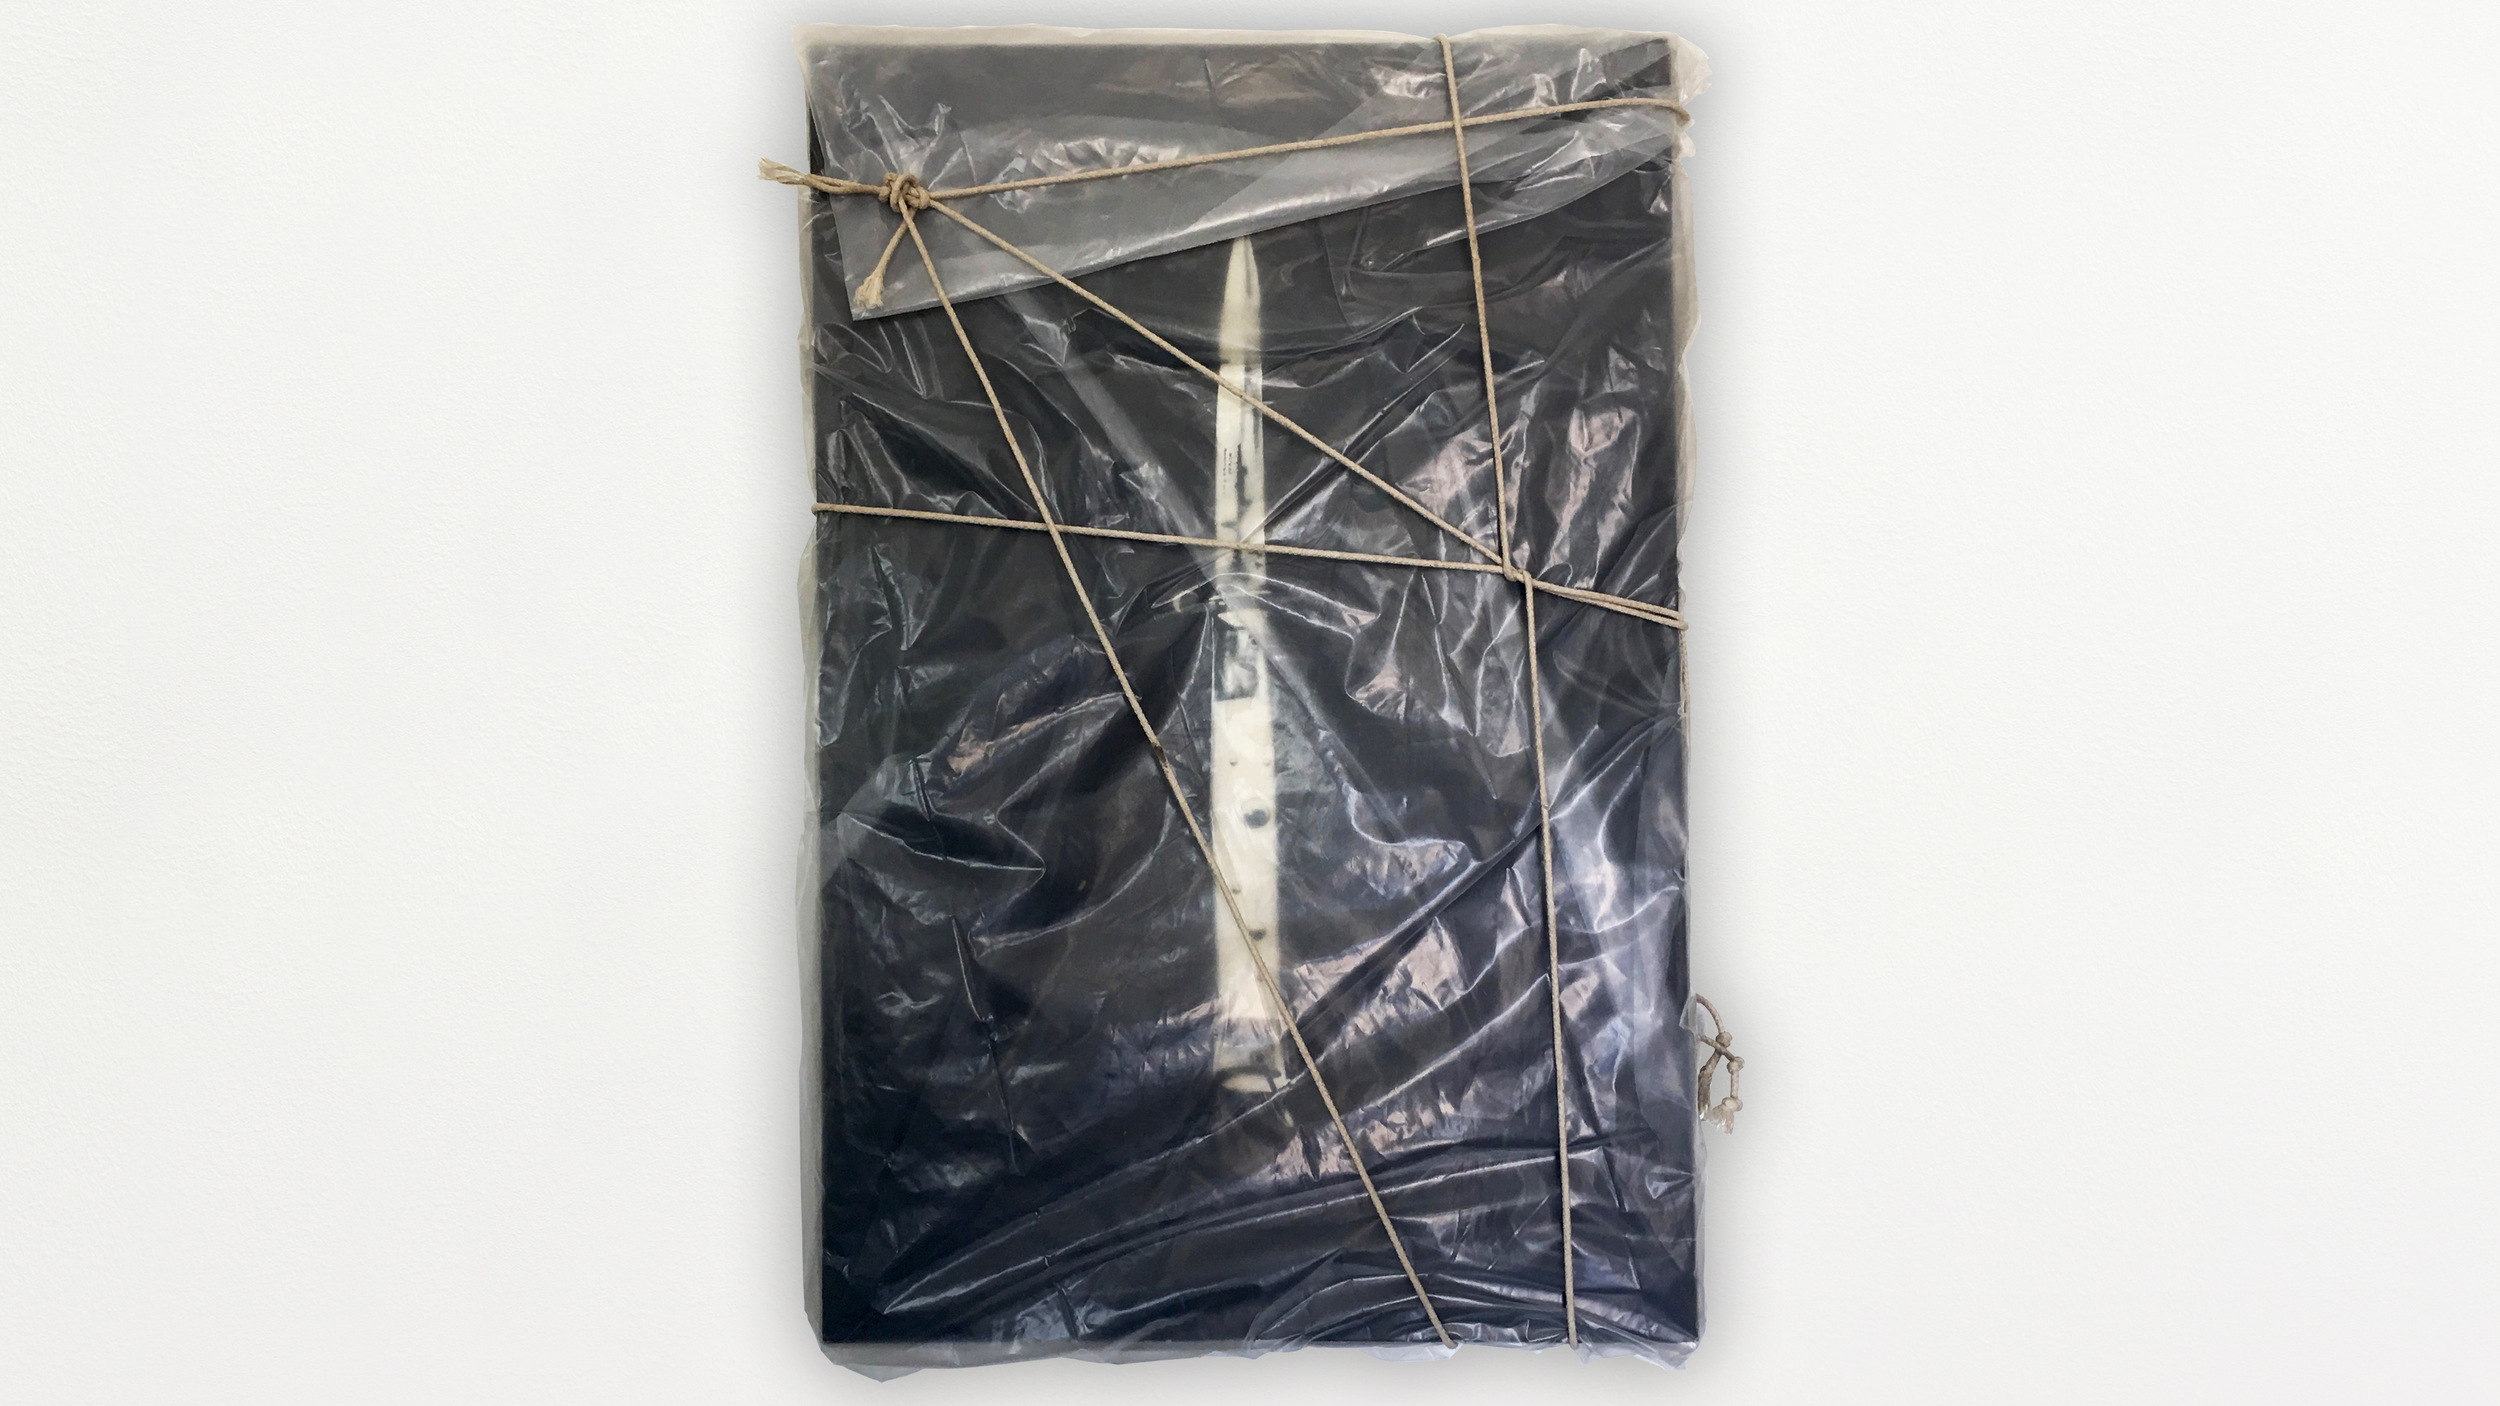 WRAPPED KNIFE INSTALLATION - oil on canvas, visqueen, rope - 25x30